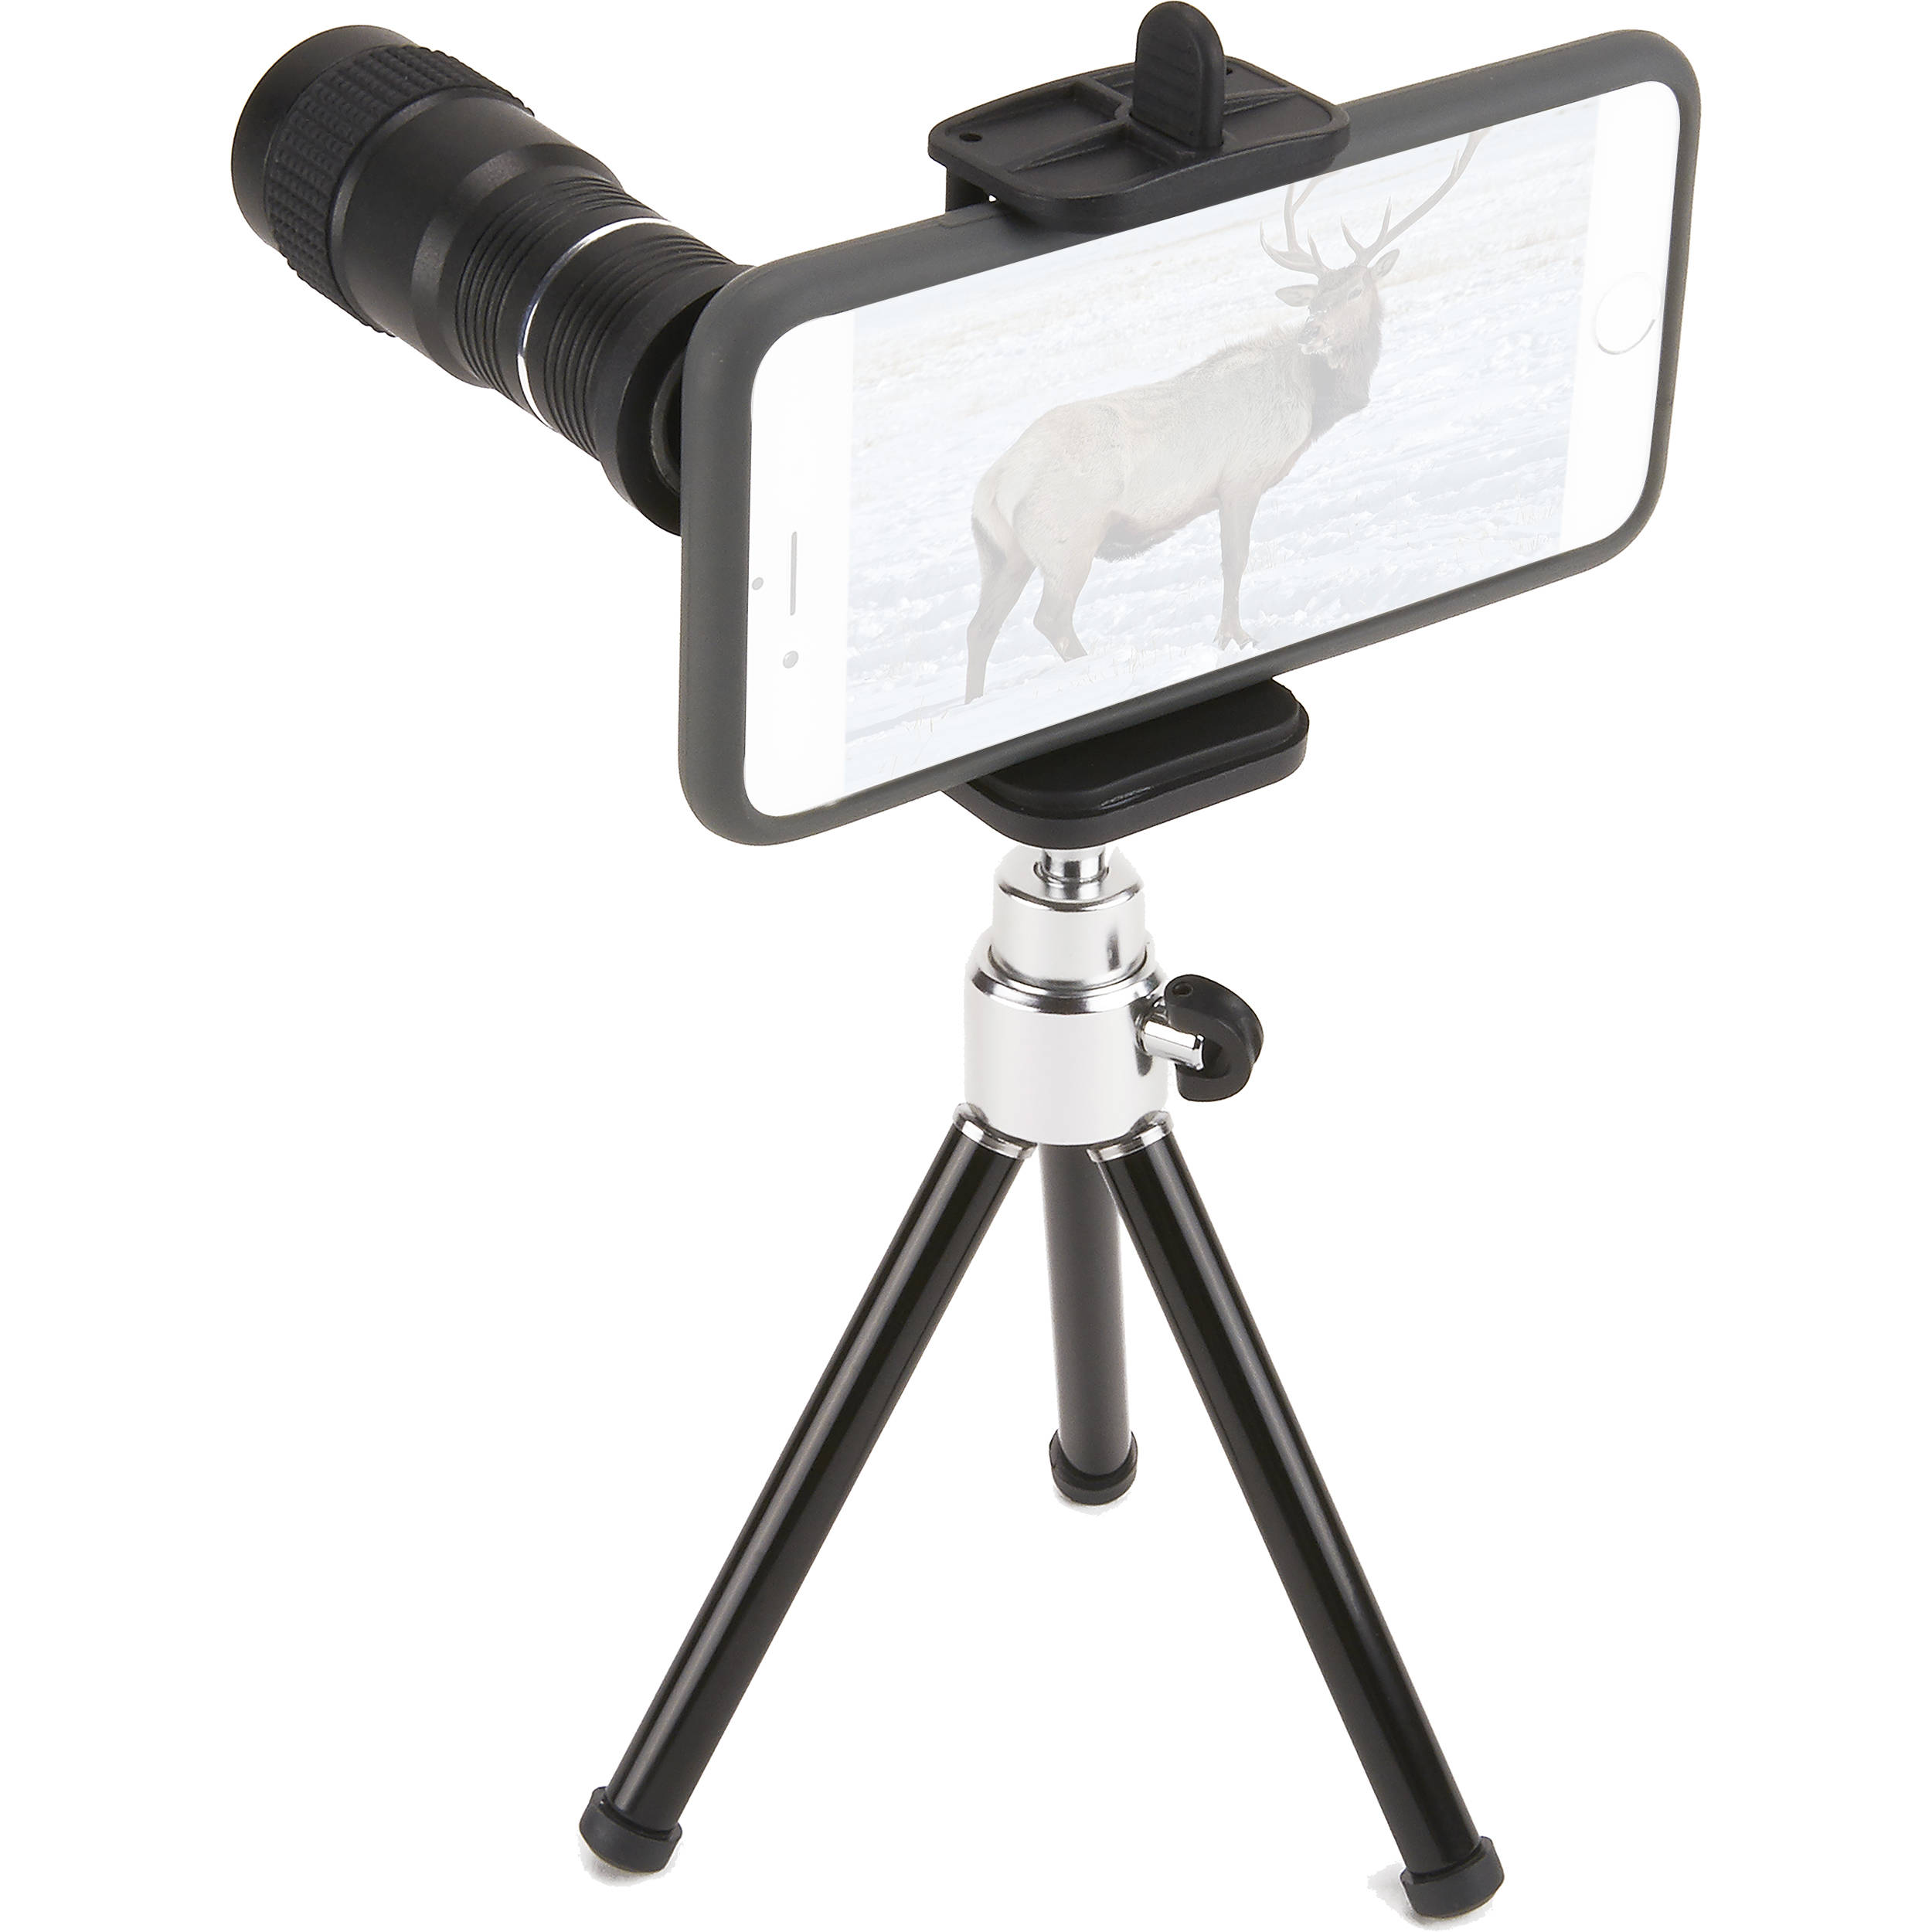 carson hookupz review Carson hookupz 20 universal smartphone optics digiscoping adapter for binoculars, spotting scopes find answers in product info, q&as, reviews.